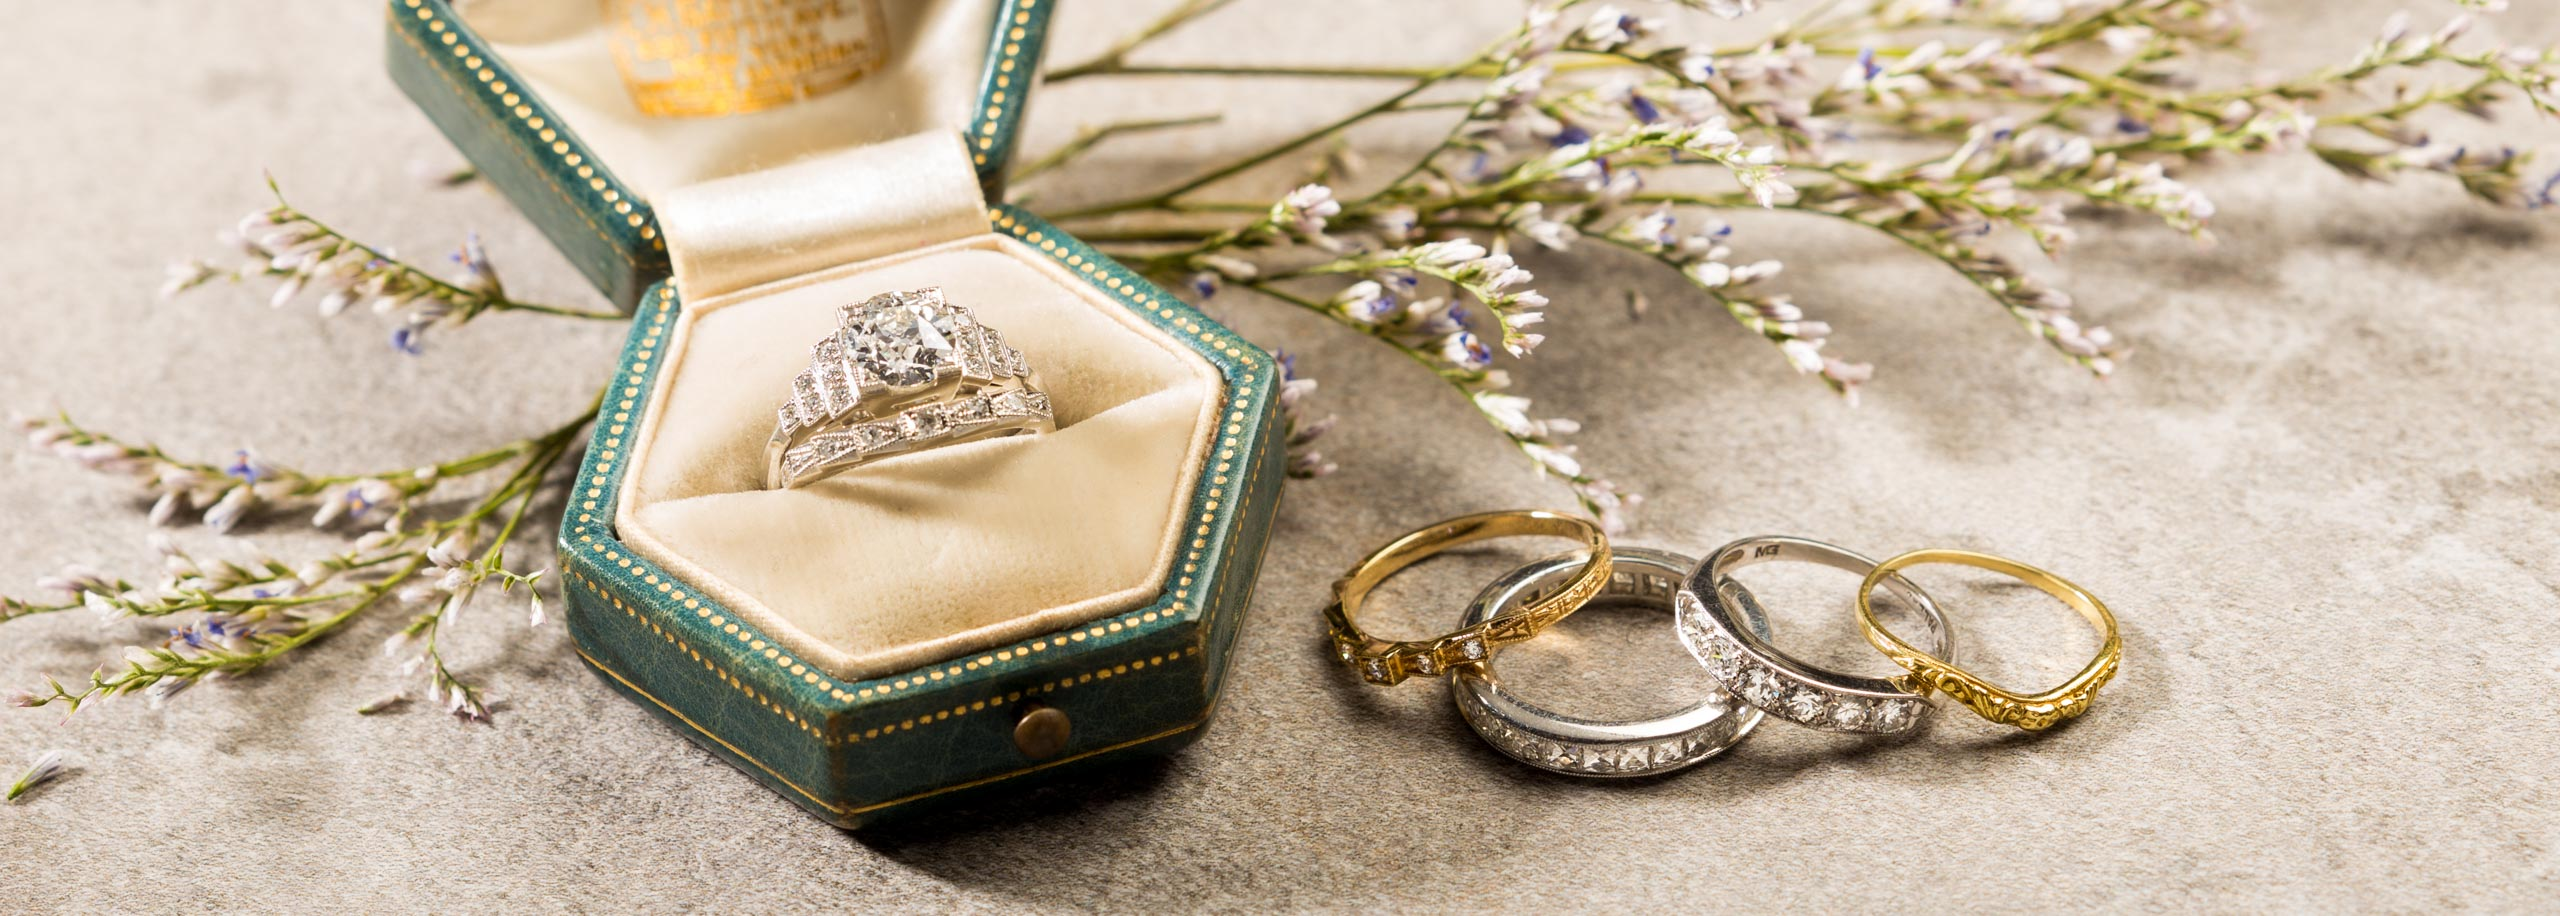 How to pair your wedding band